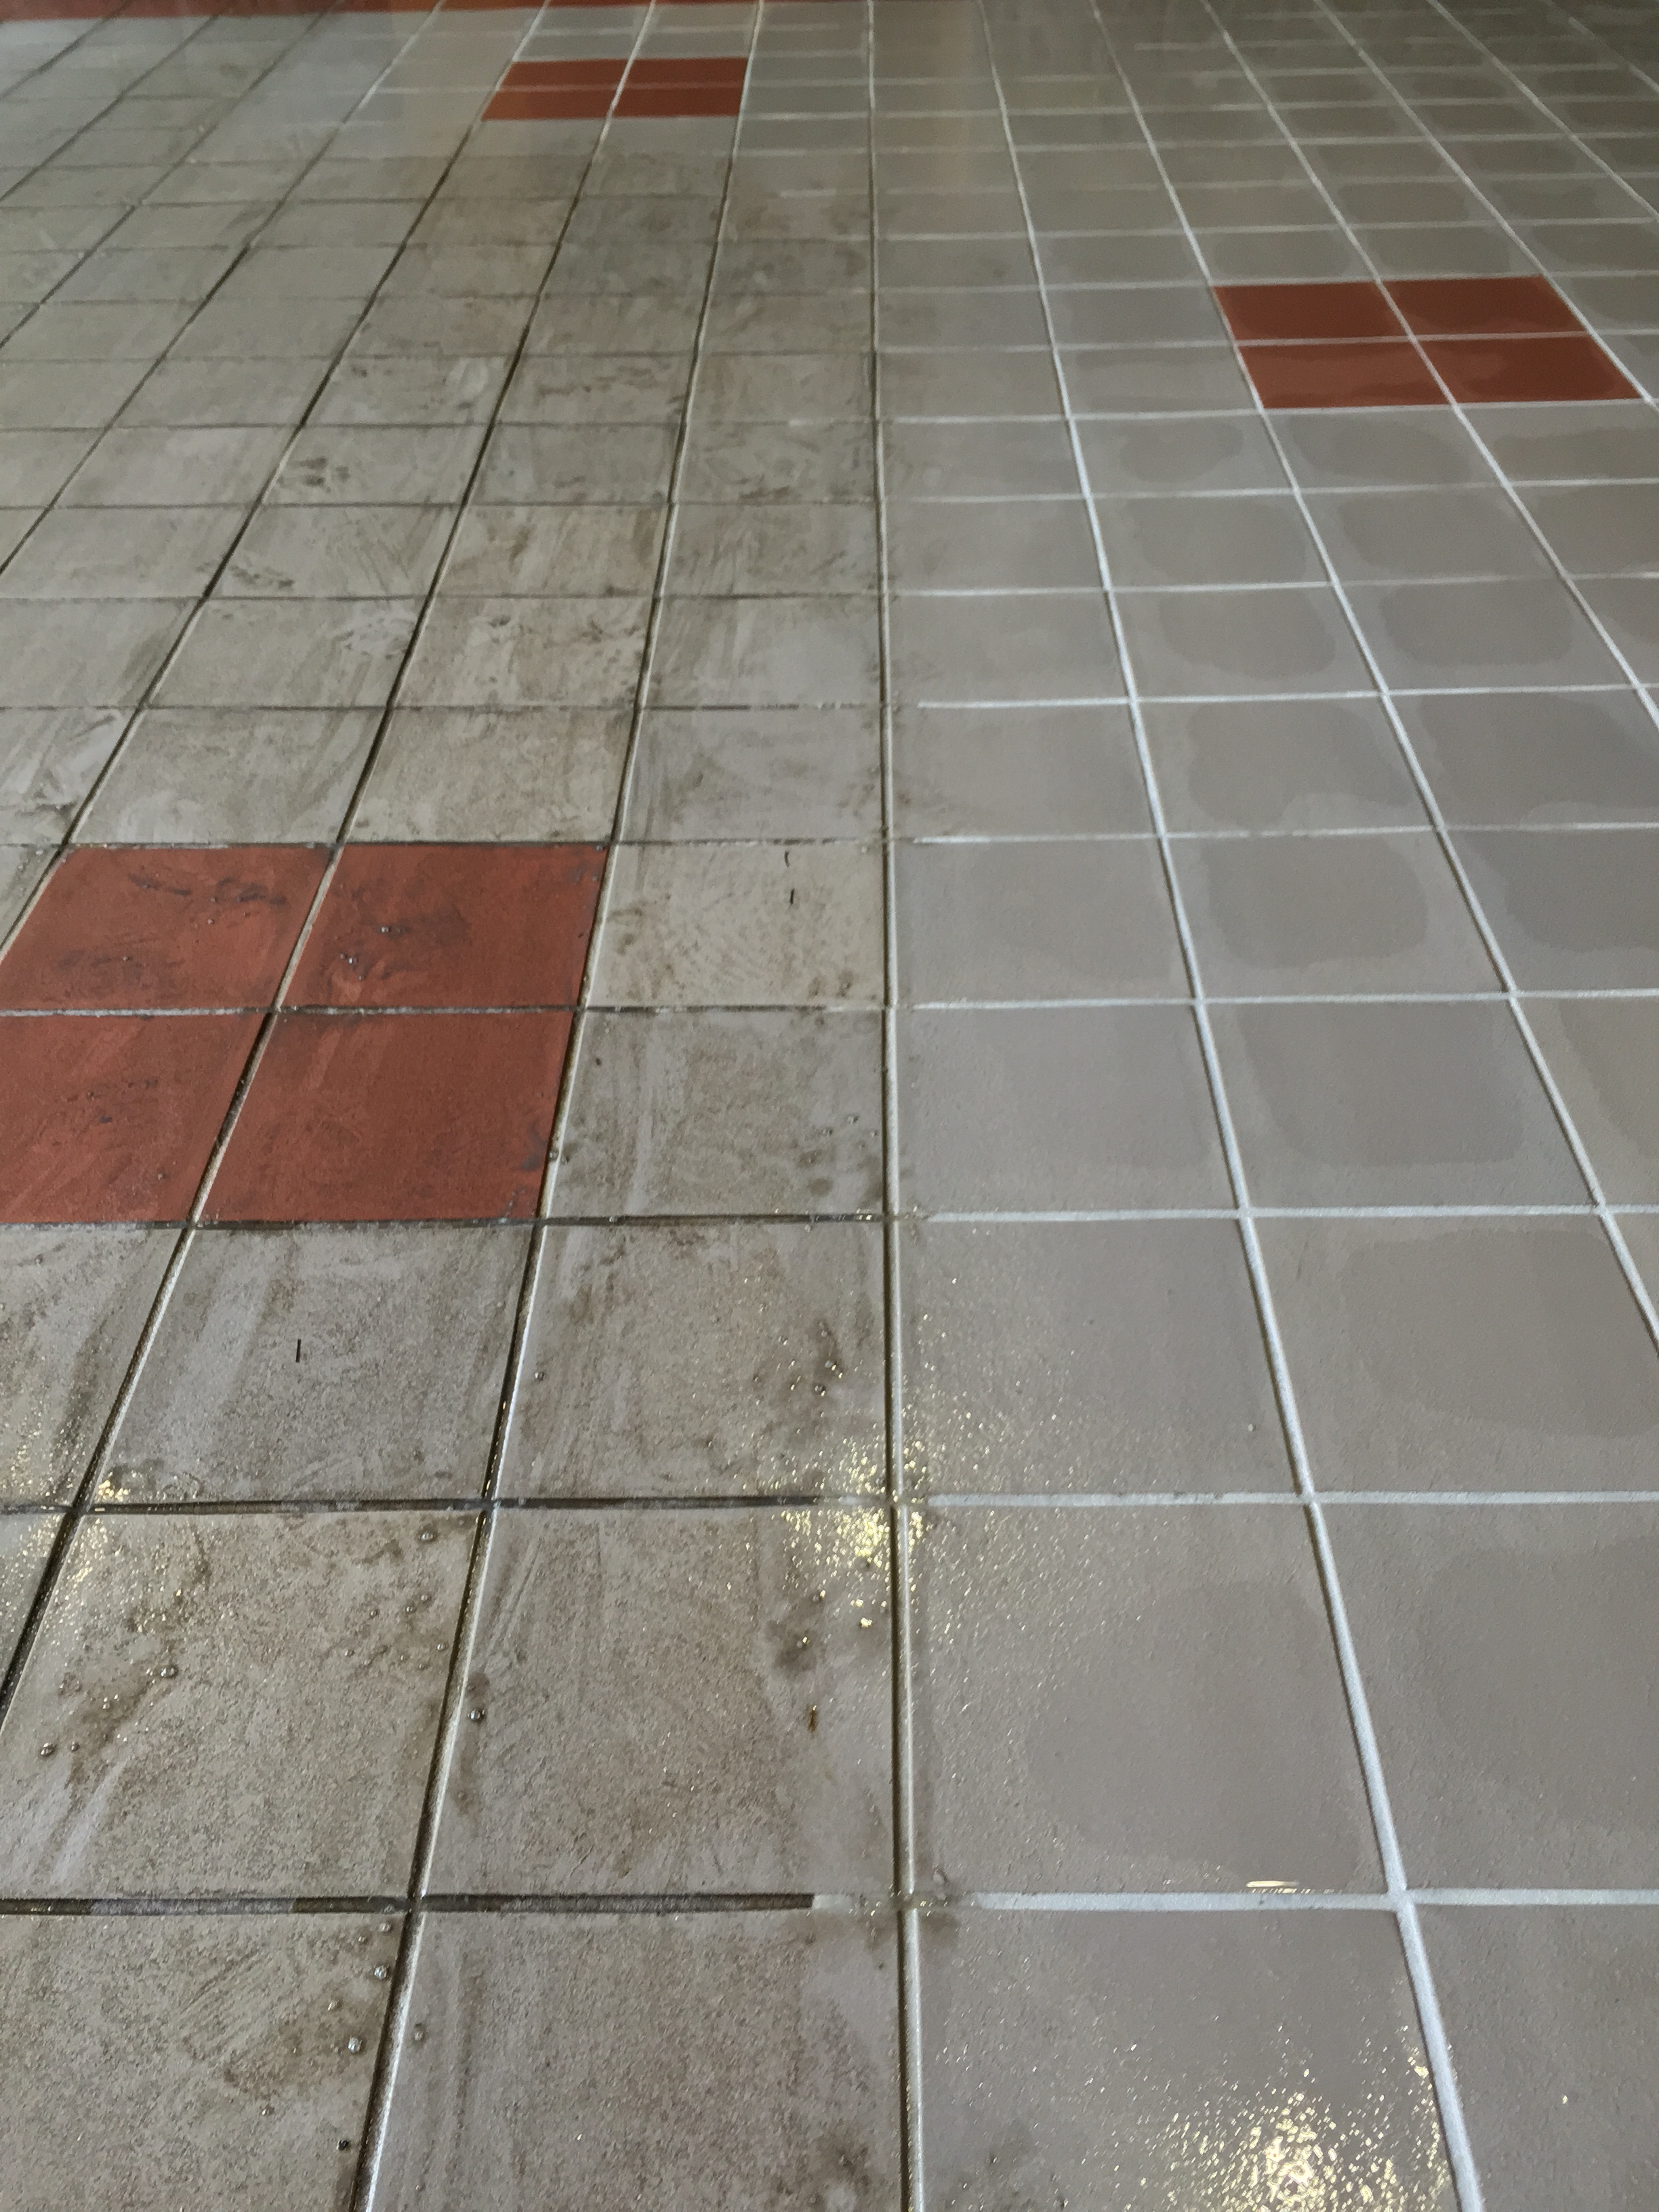 Building entrance floor tile